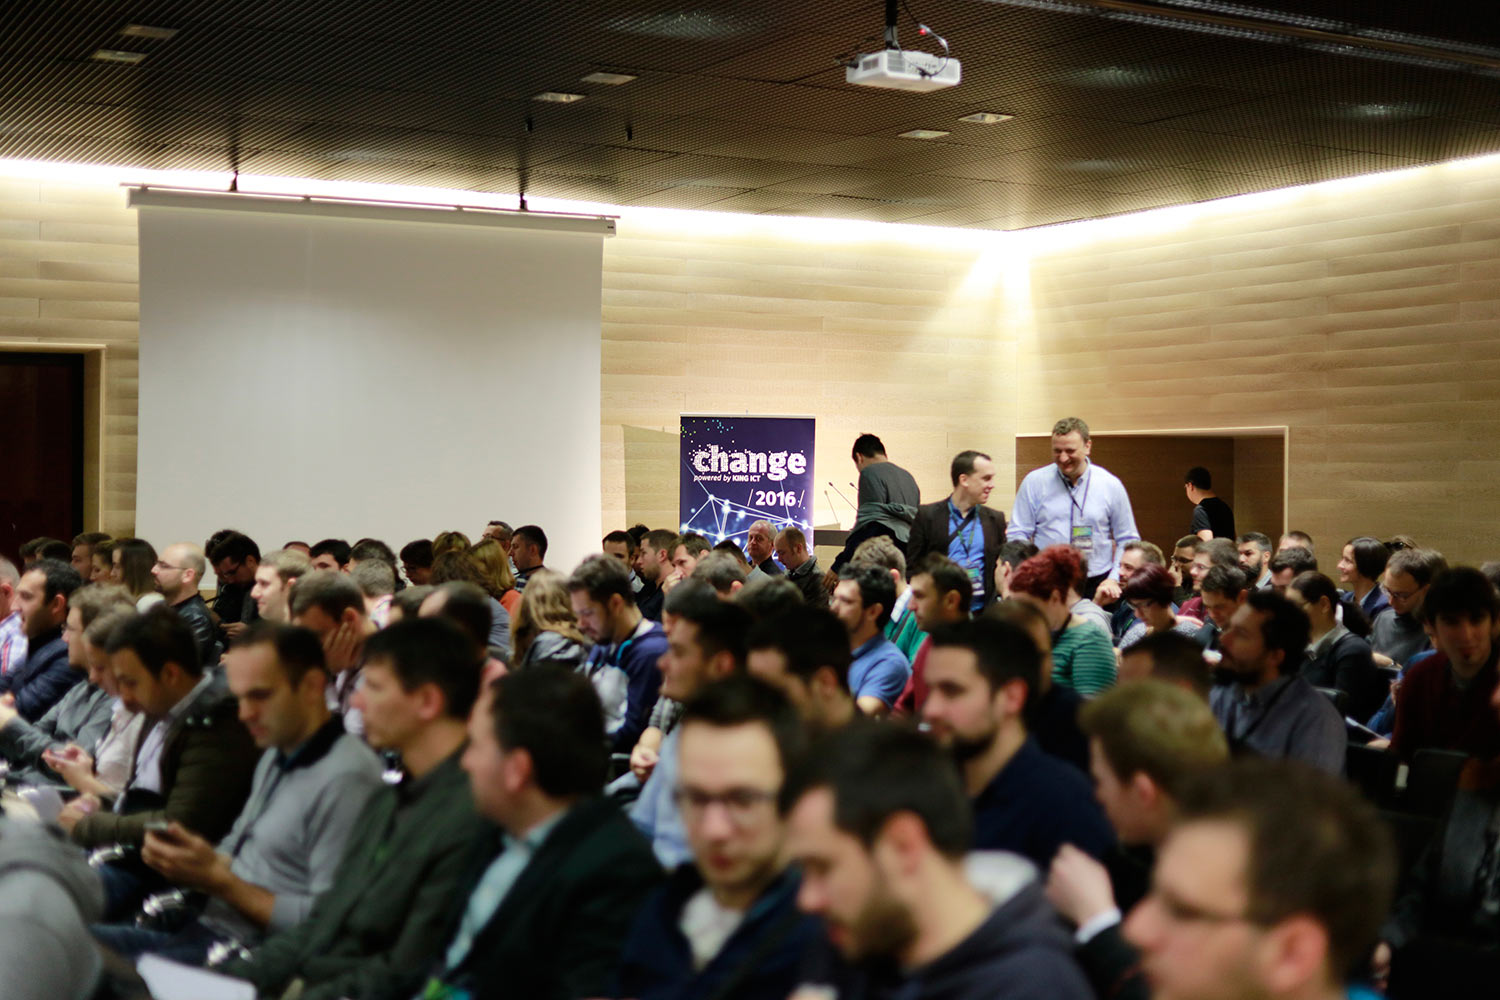 http://2016.changecon.com/wp-content/uploads/2016/10/audience_03.jpg